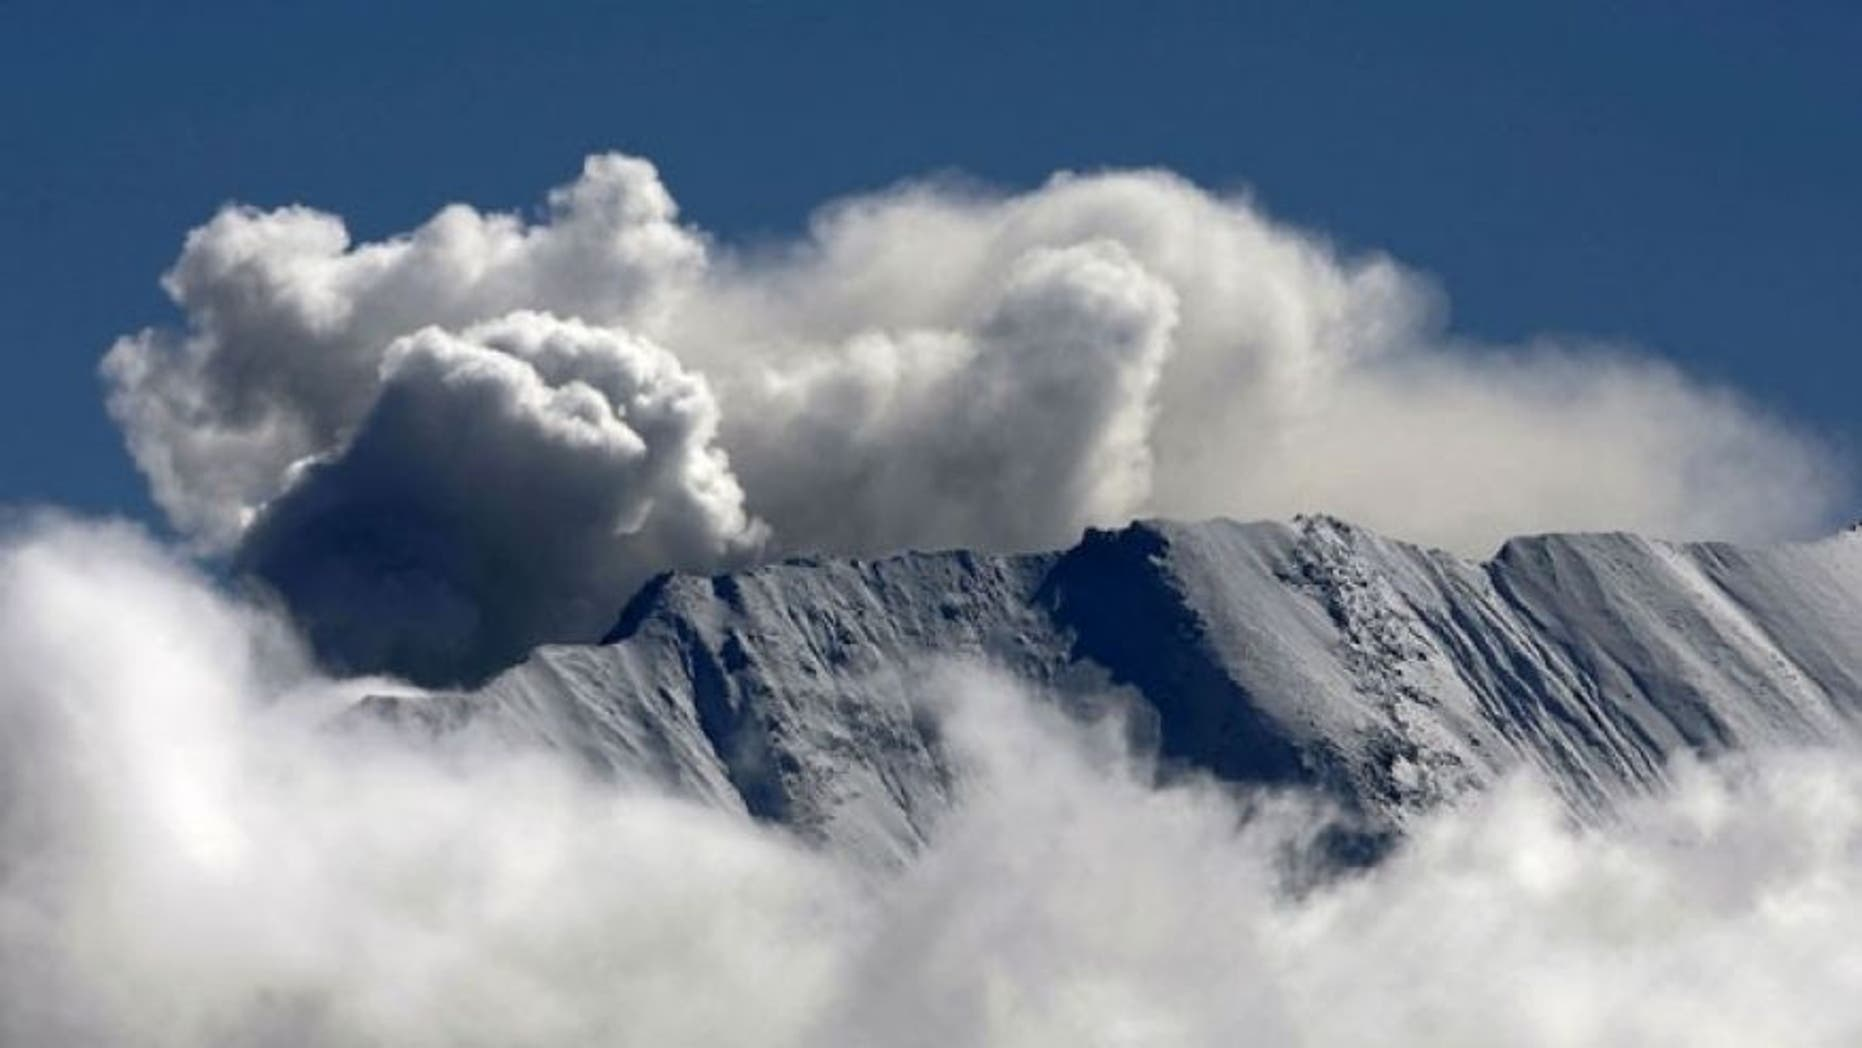 Oct. 10, 2004: Steam vents out of the crater of Mount St. Helens.